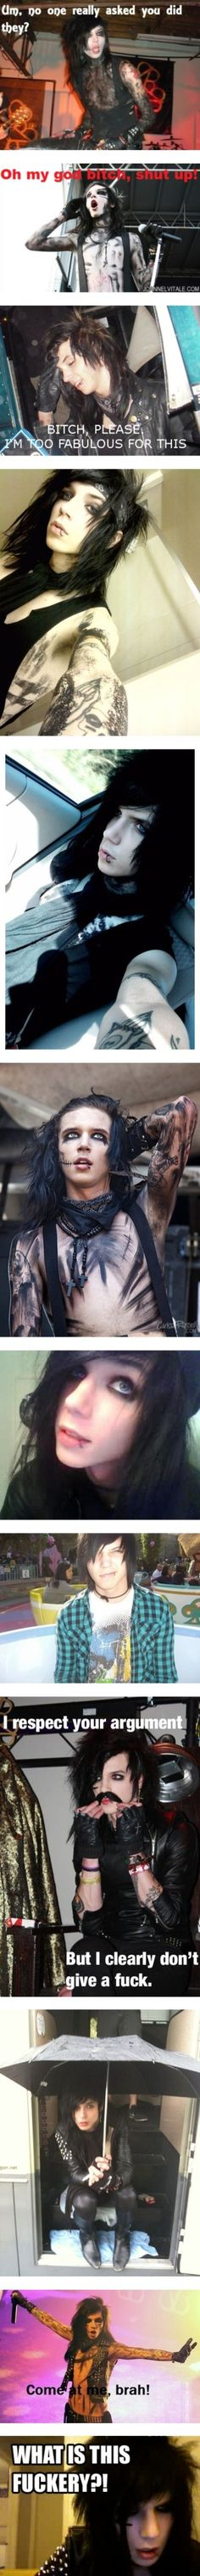 """Andy biersack everyone"" by sbtbb ❤ liked on Polyvore"